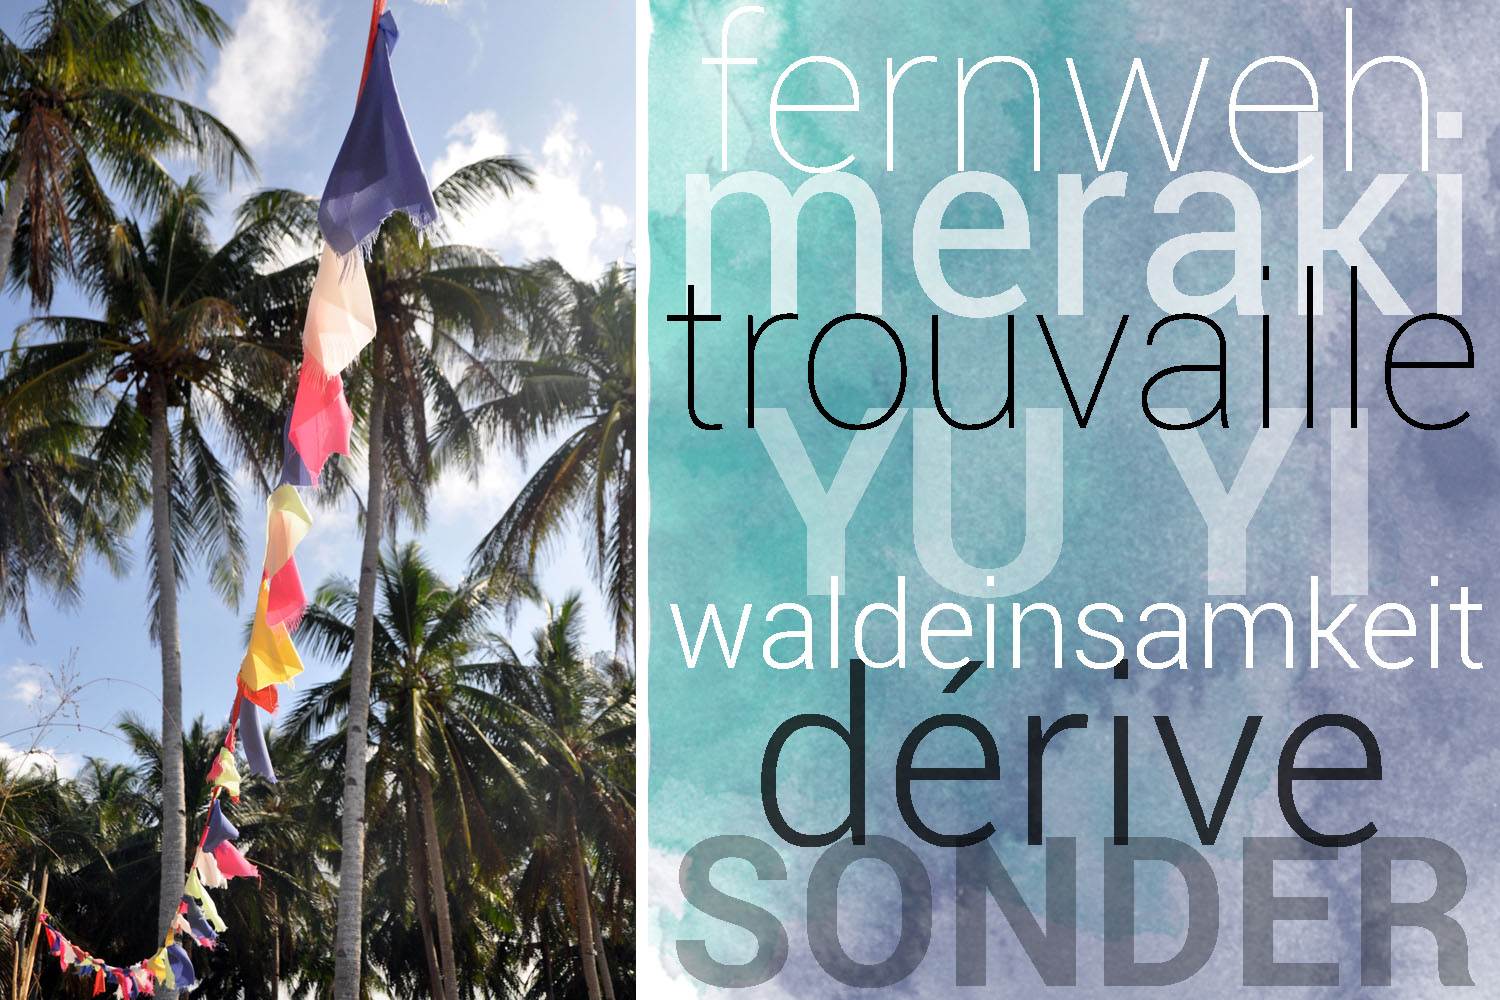 14 Awesome Travel Words You've Never Heard | Two Wandering Soles